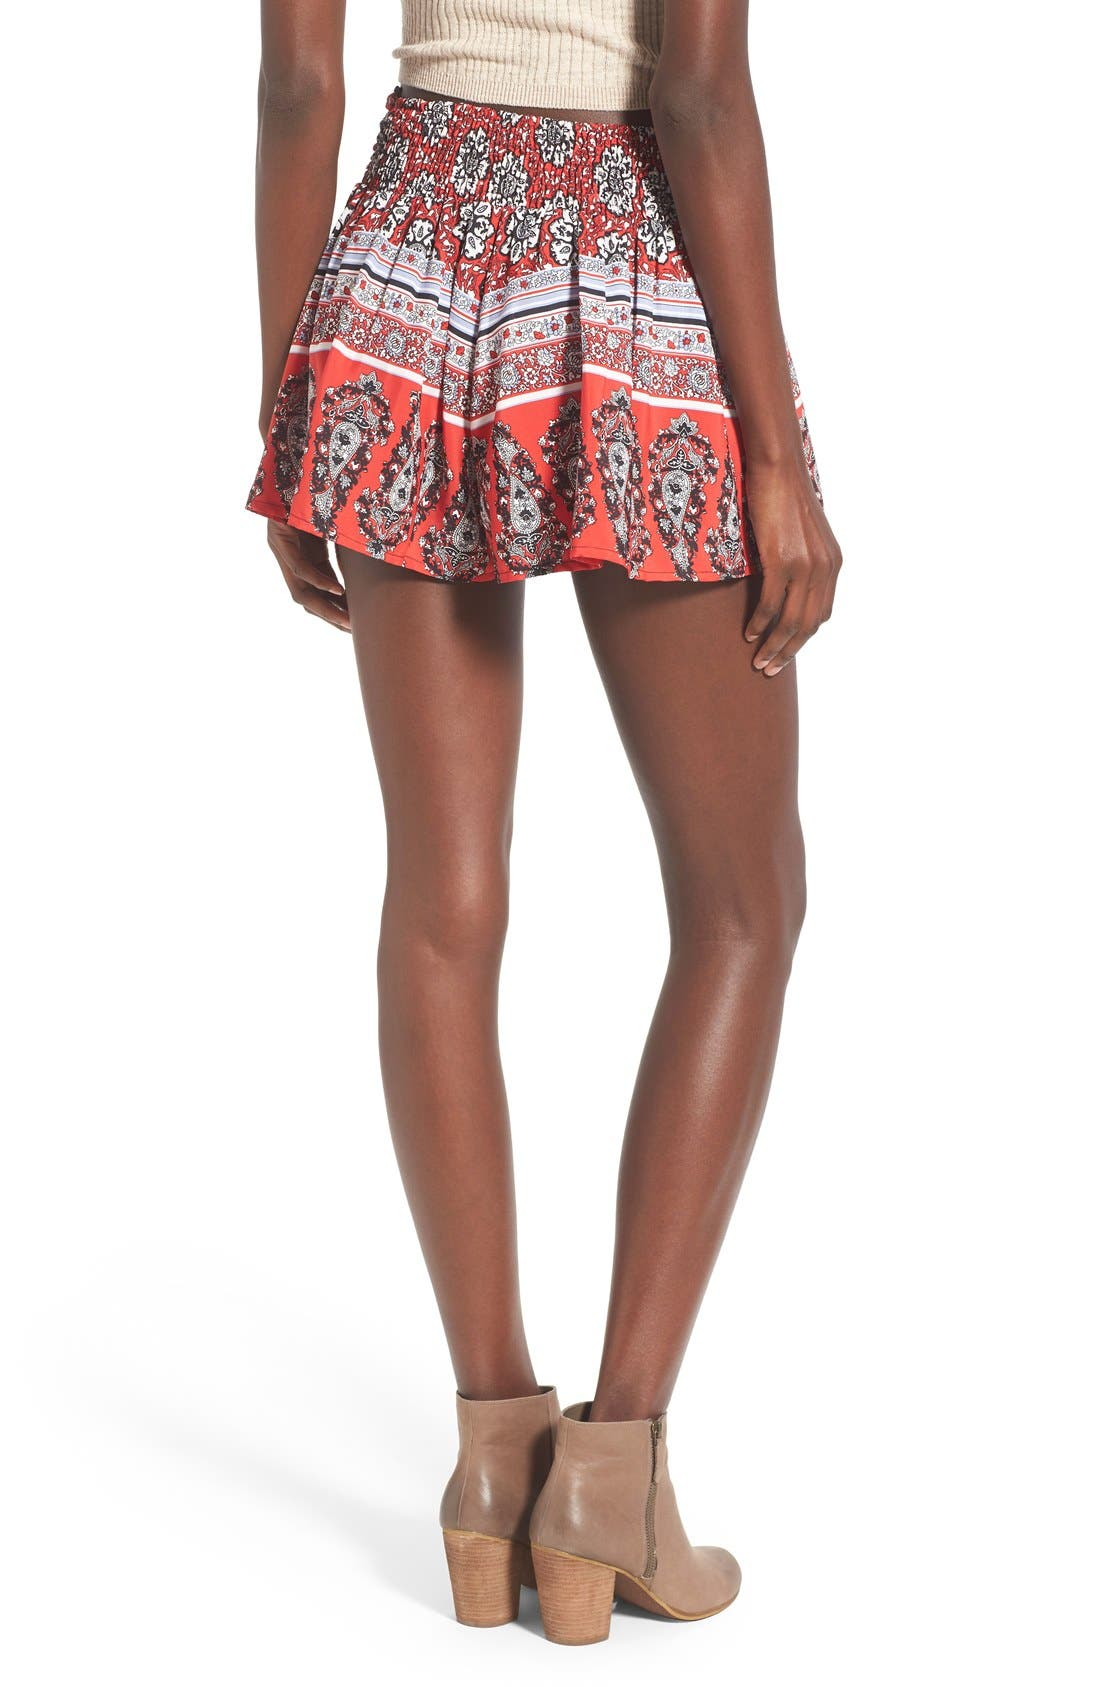 BAND OF GYPSIES, Border Print Tie Front Shorts, Alternate thumbnail 3, color, 600